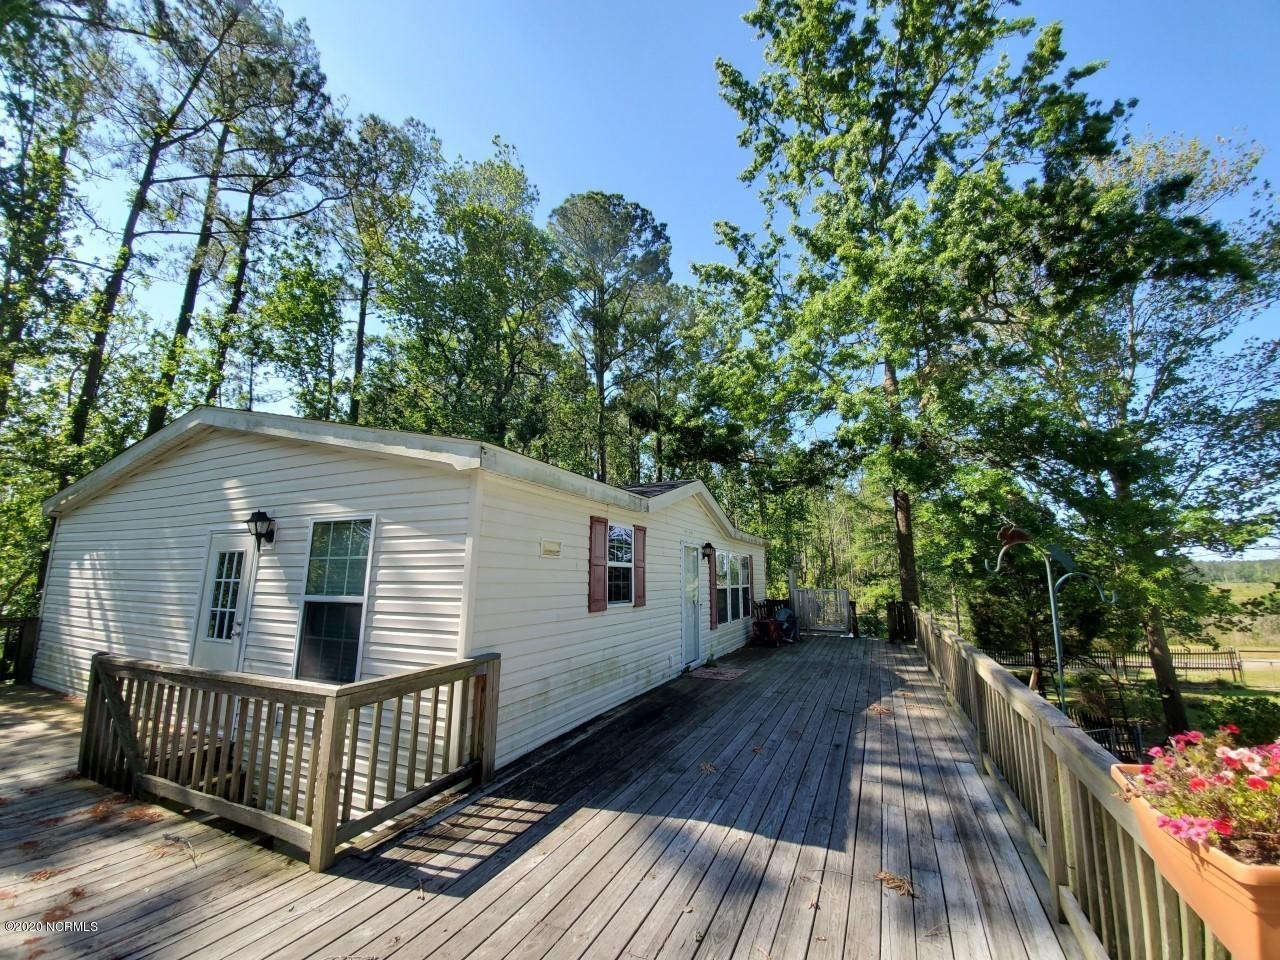 152 Lee Street, Aurora, North Carolina 27806, 2 Bedrooms Bedrooms, 5 Rooms Rooms,2 BathroomsBathrooms,Manufactured home,For sale,Lee,100217005